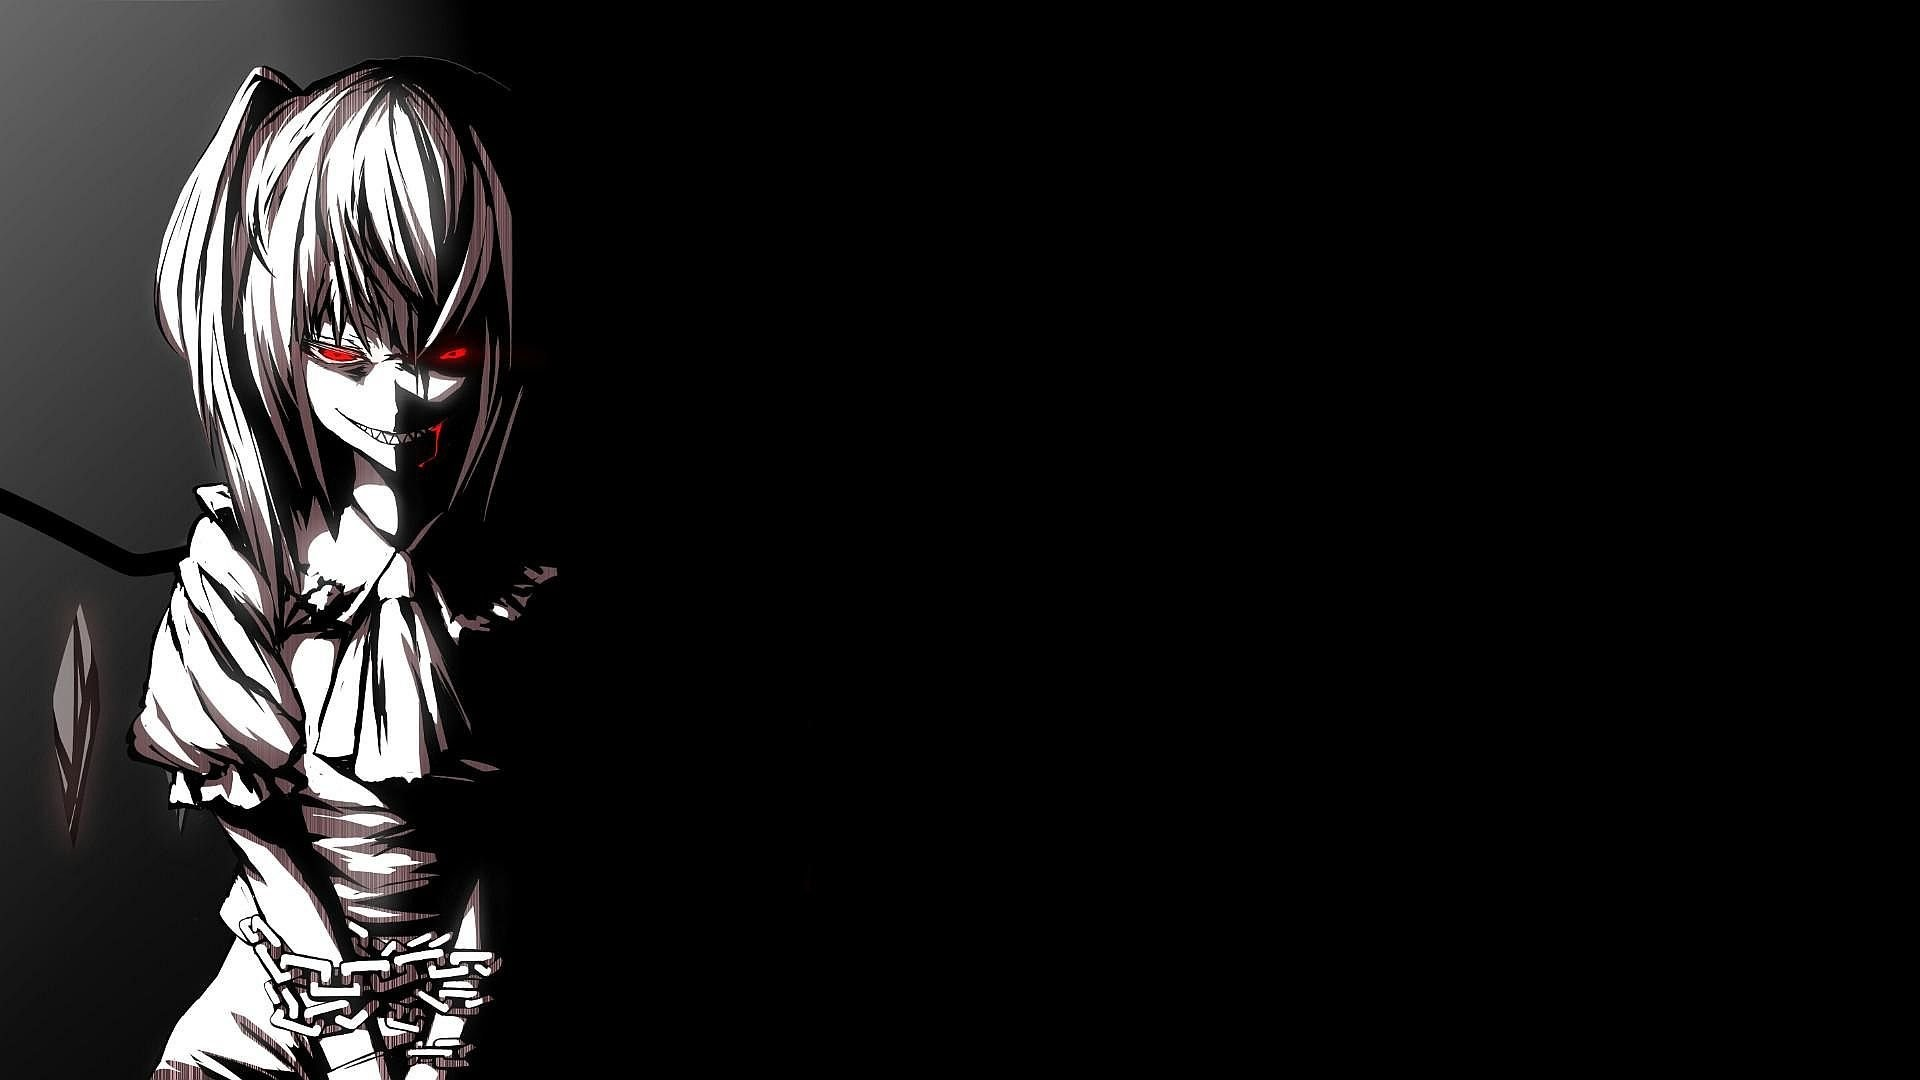 1920x1080 dark anime girl wallpaper 9691 hd wallpapers in anime imagesci com